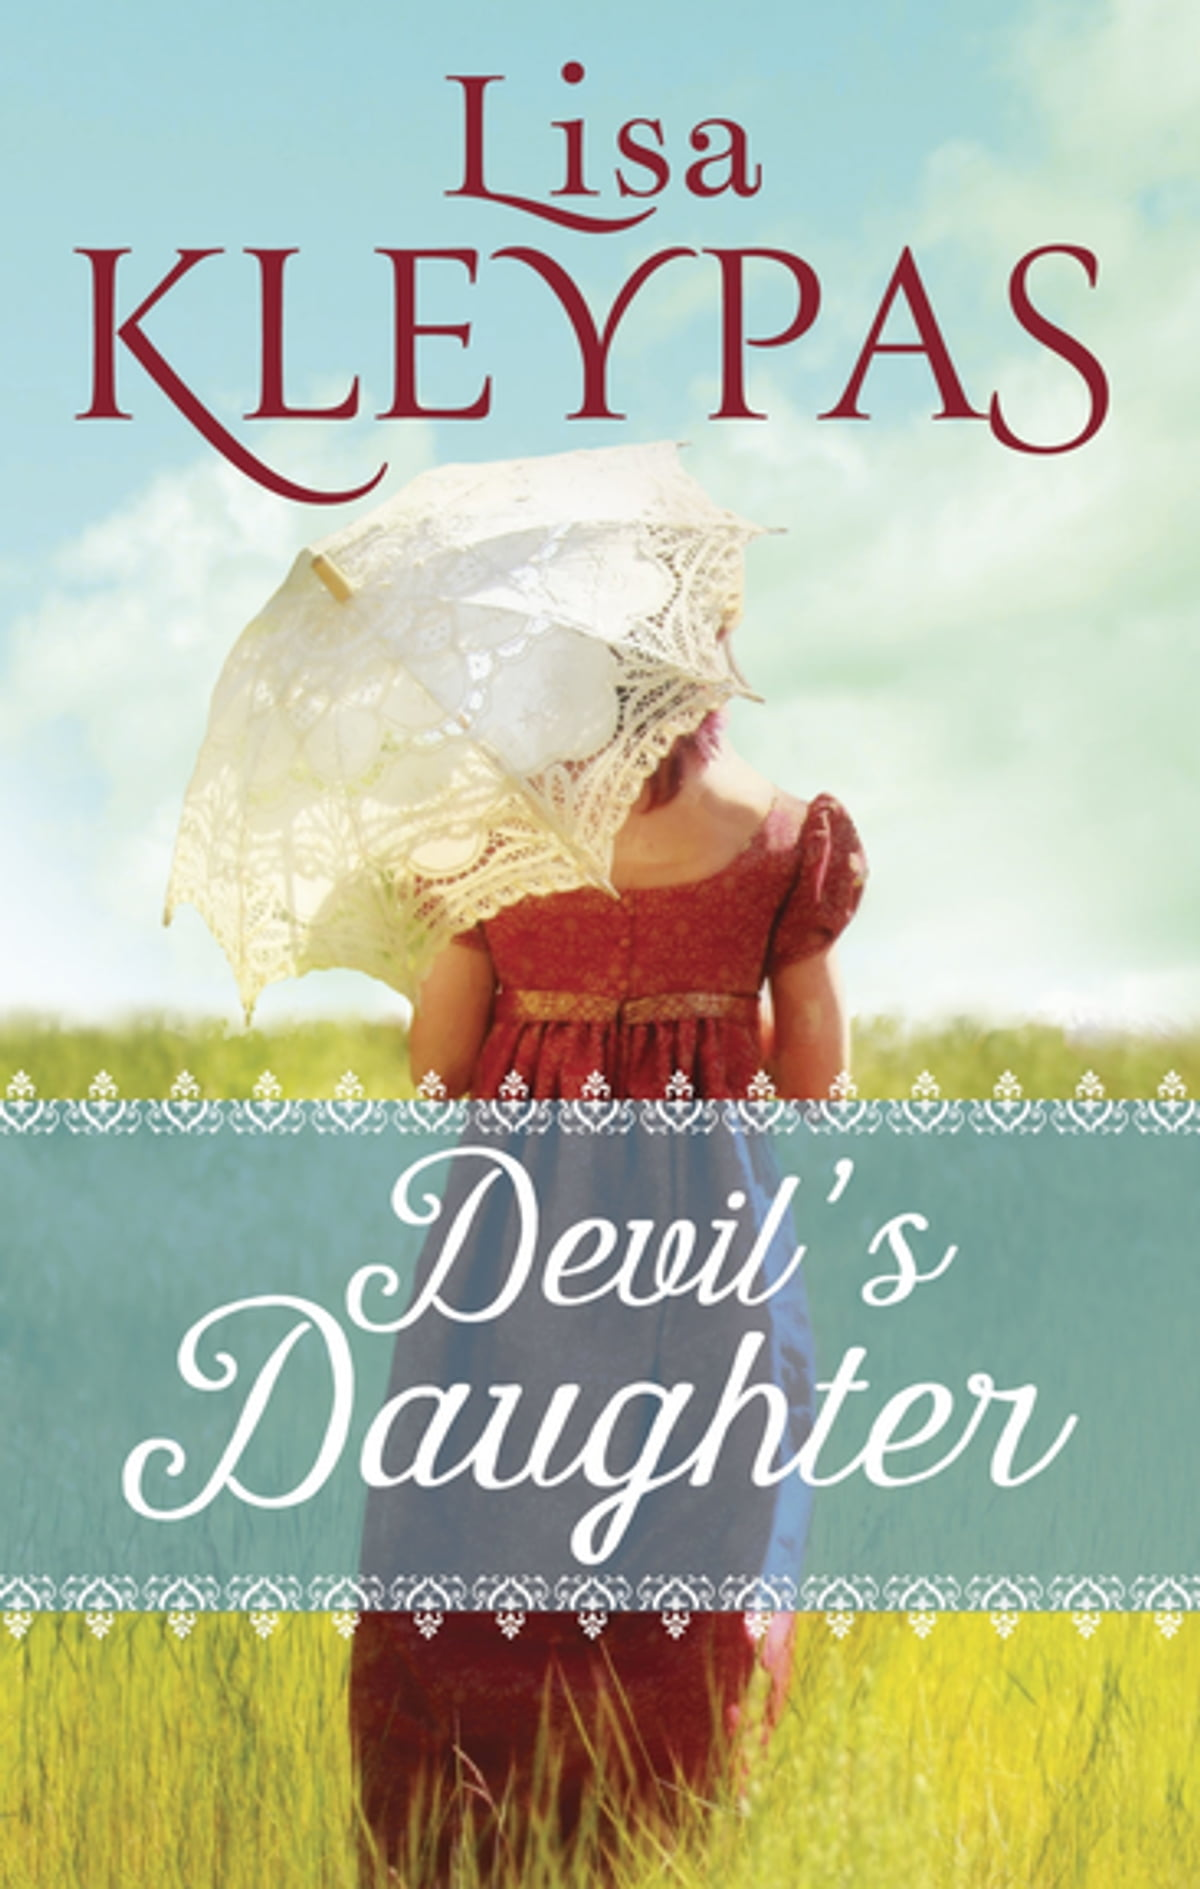 Libros De Lisa Kleypas Devil S Daughter Ebook By Lisa Kleypas Rakuten Kobo